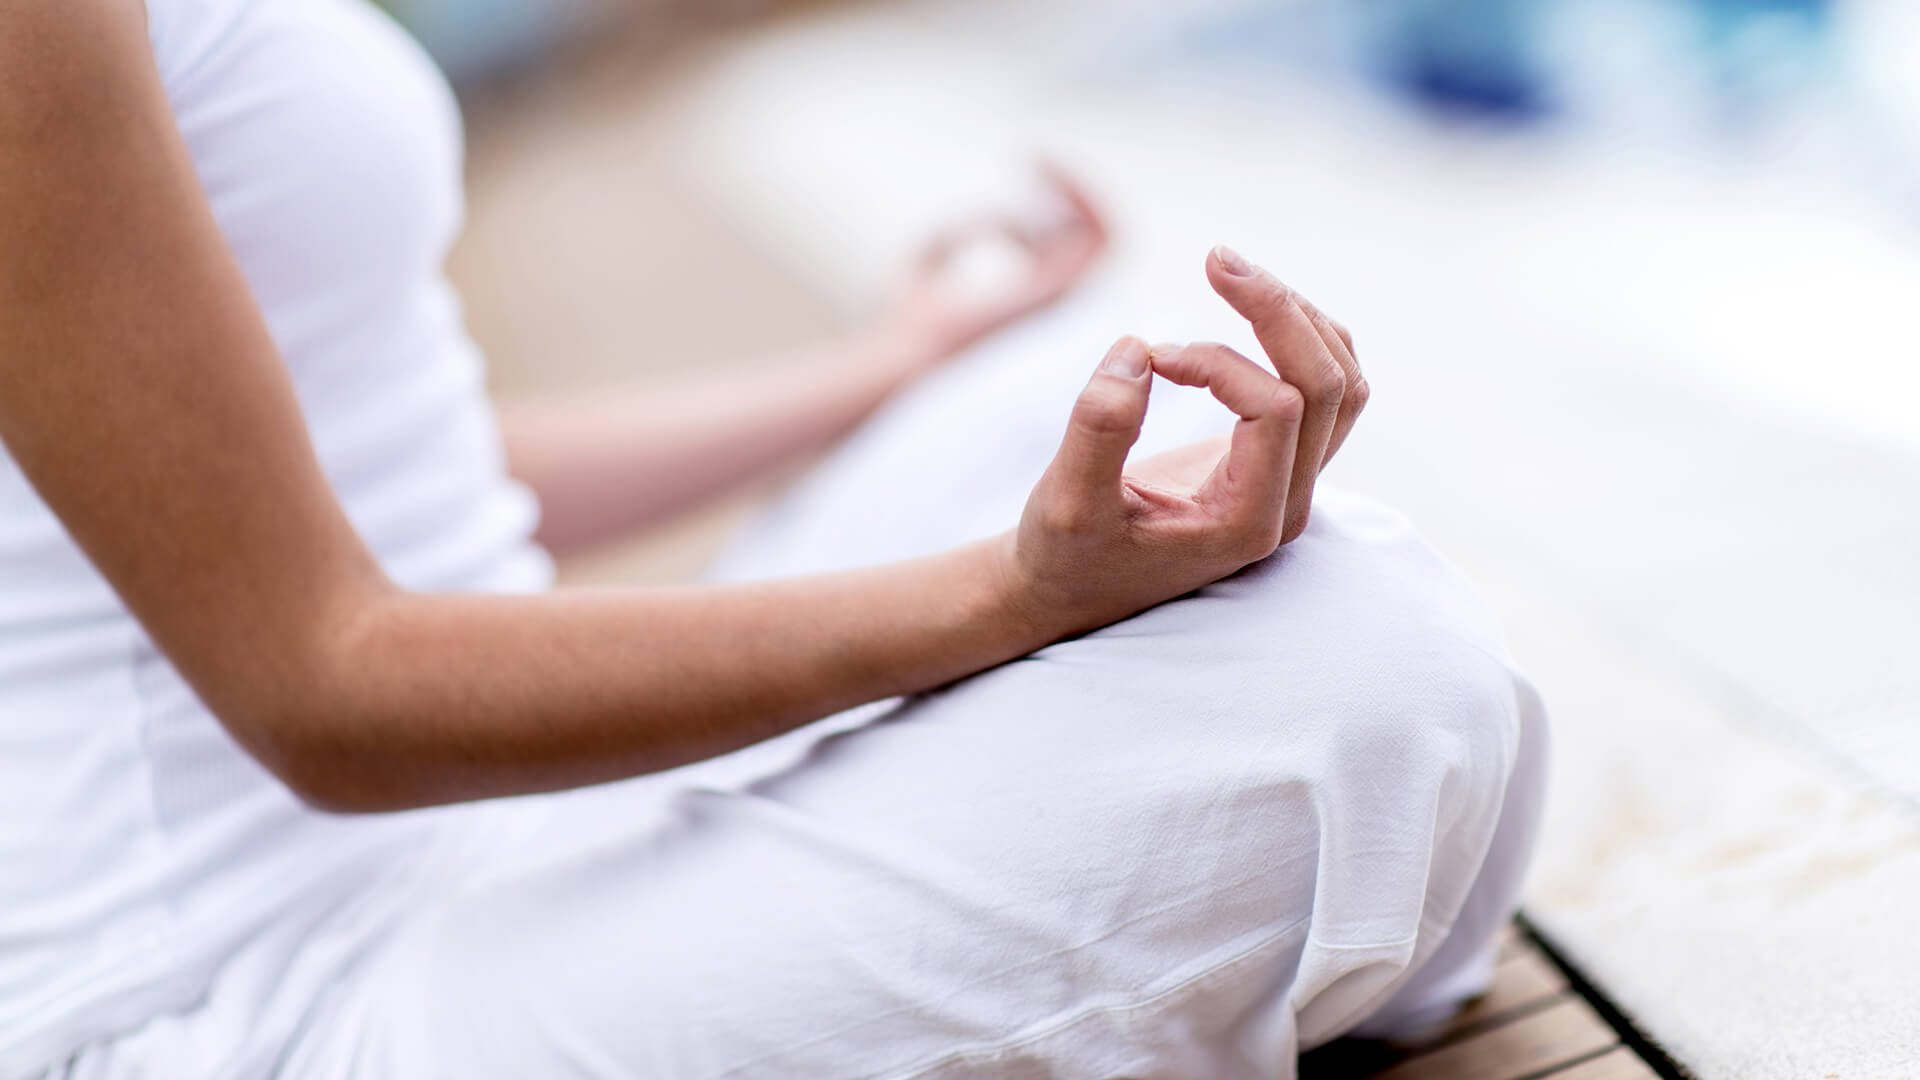 how safe is it for pregnant women to attend a Yoga class?